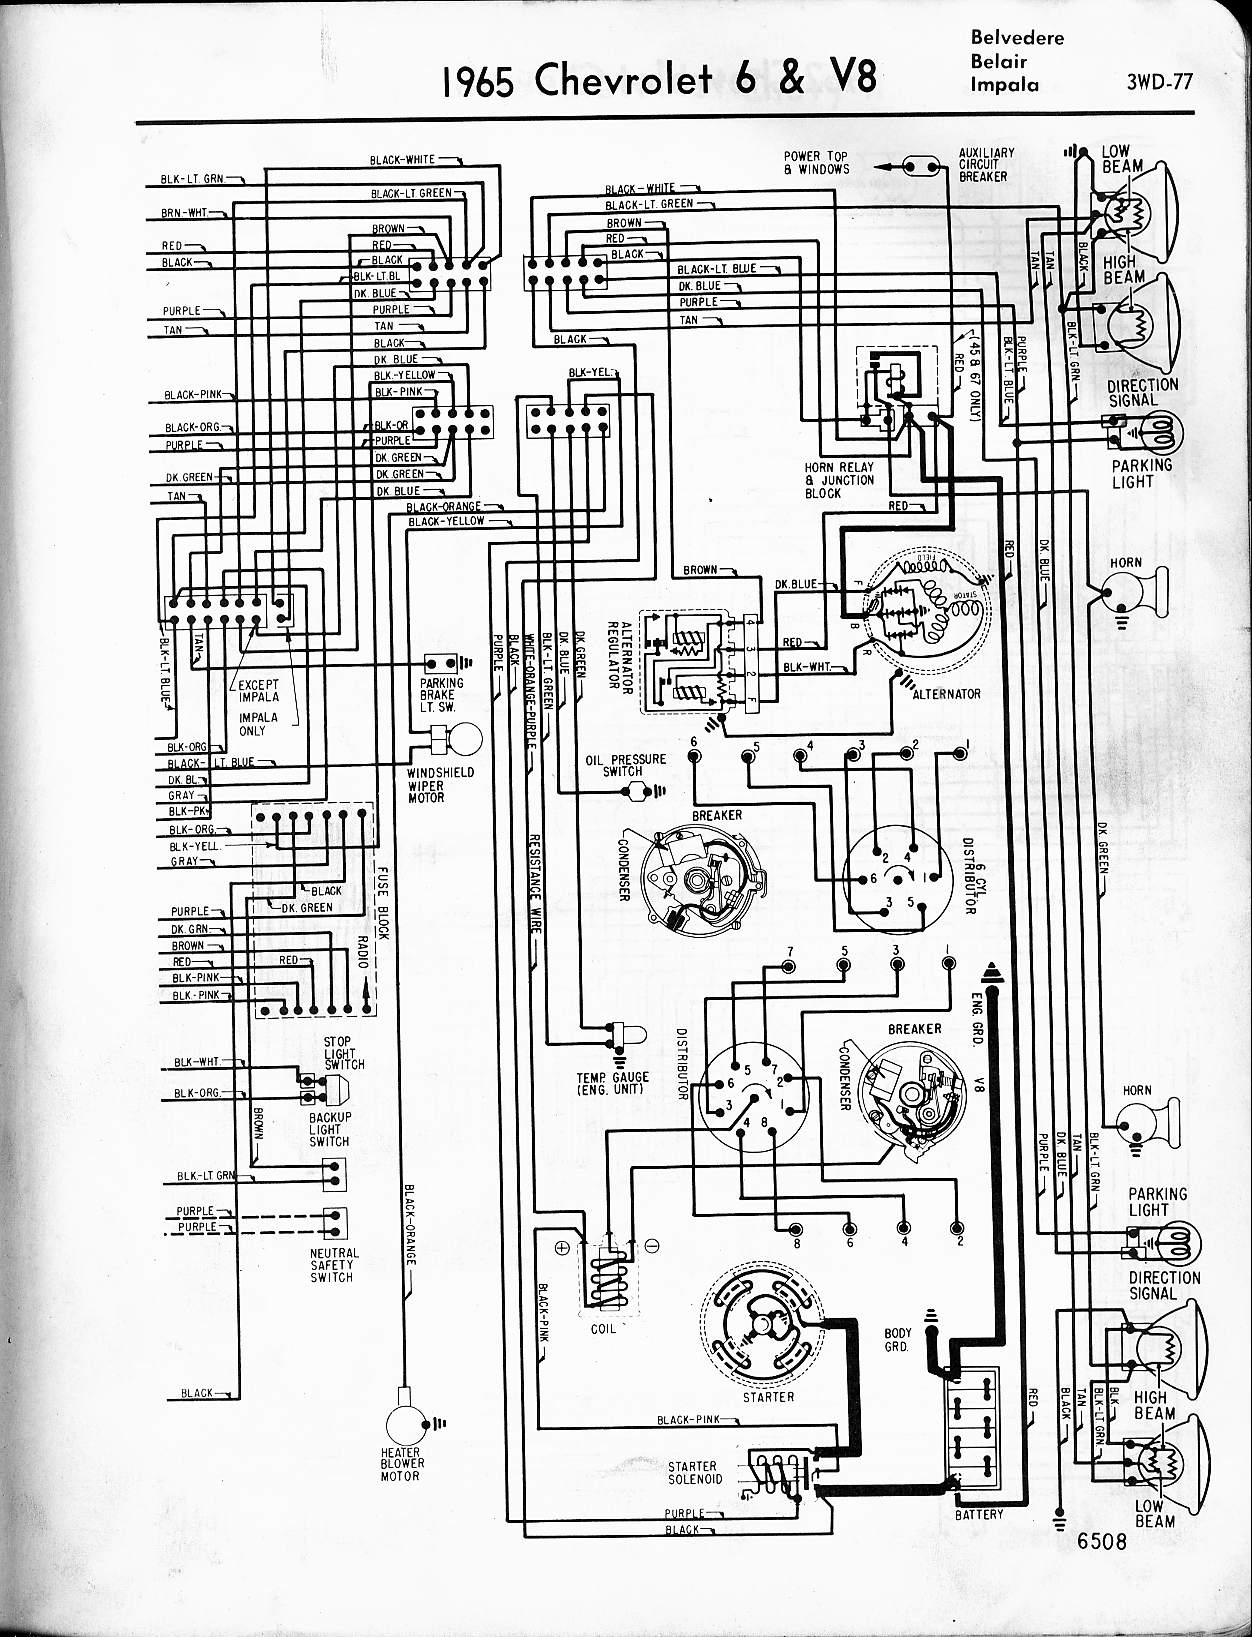 1961 gmc wiring diagram wiring diagrams best 1961 gmc wiring diagram wiring library ford headlight switch wiring diagram 1961 gmc wiring diagram